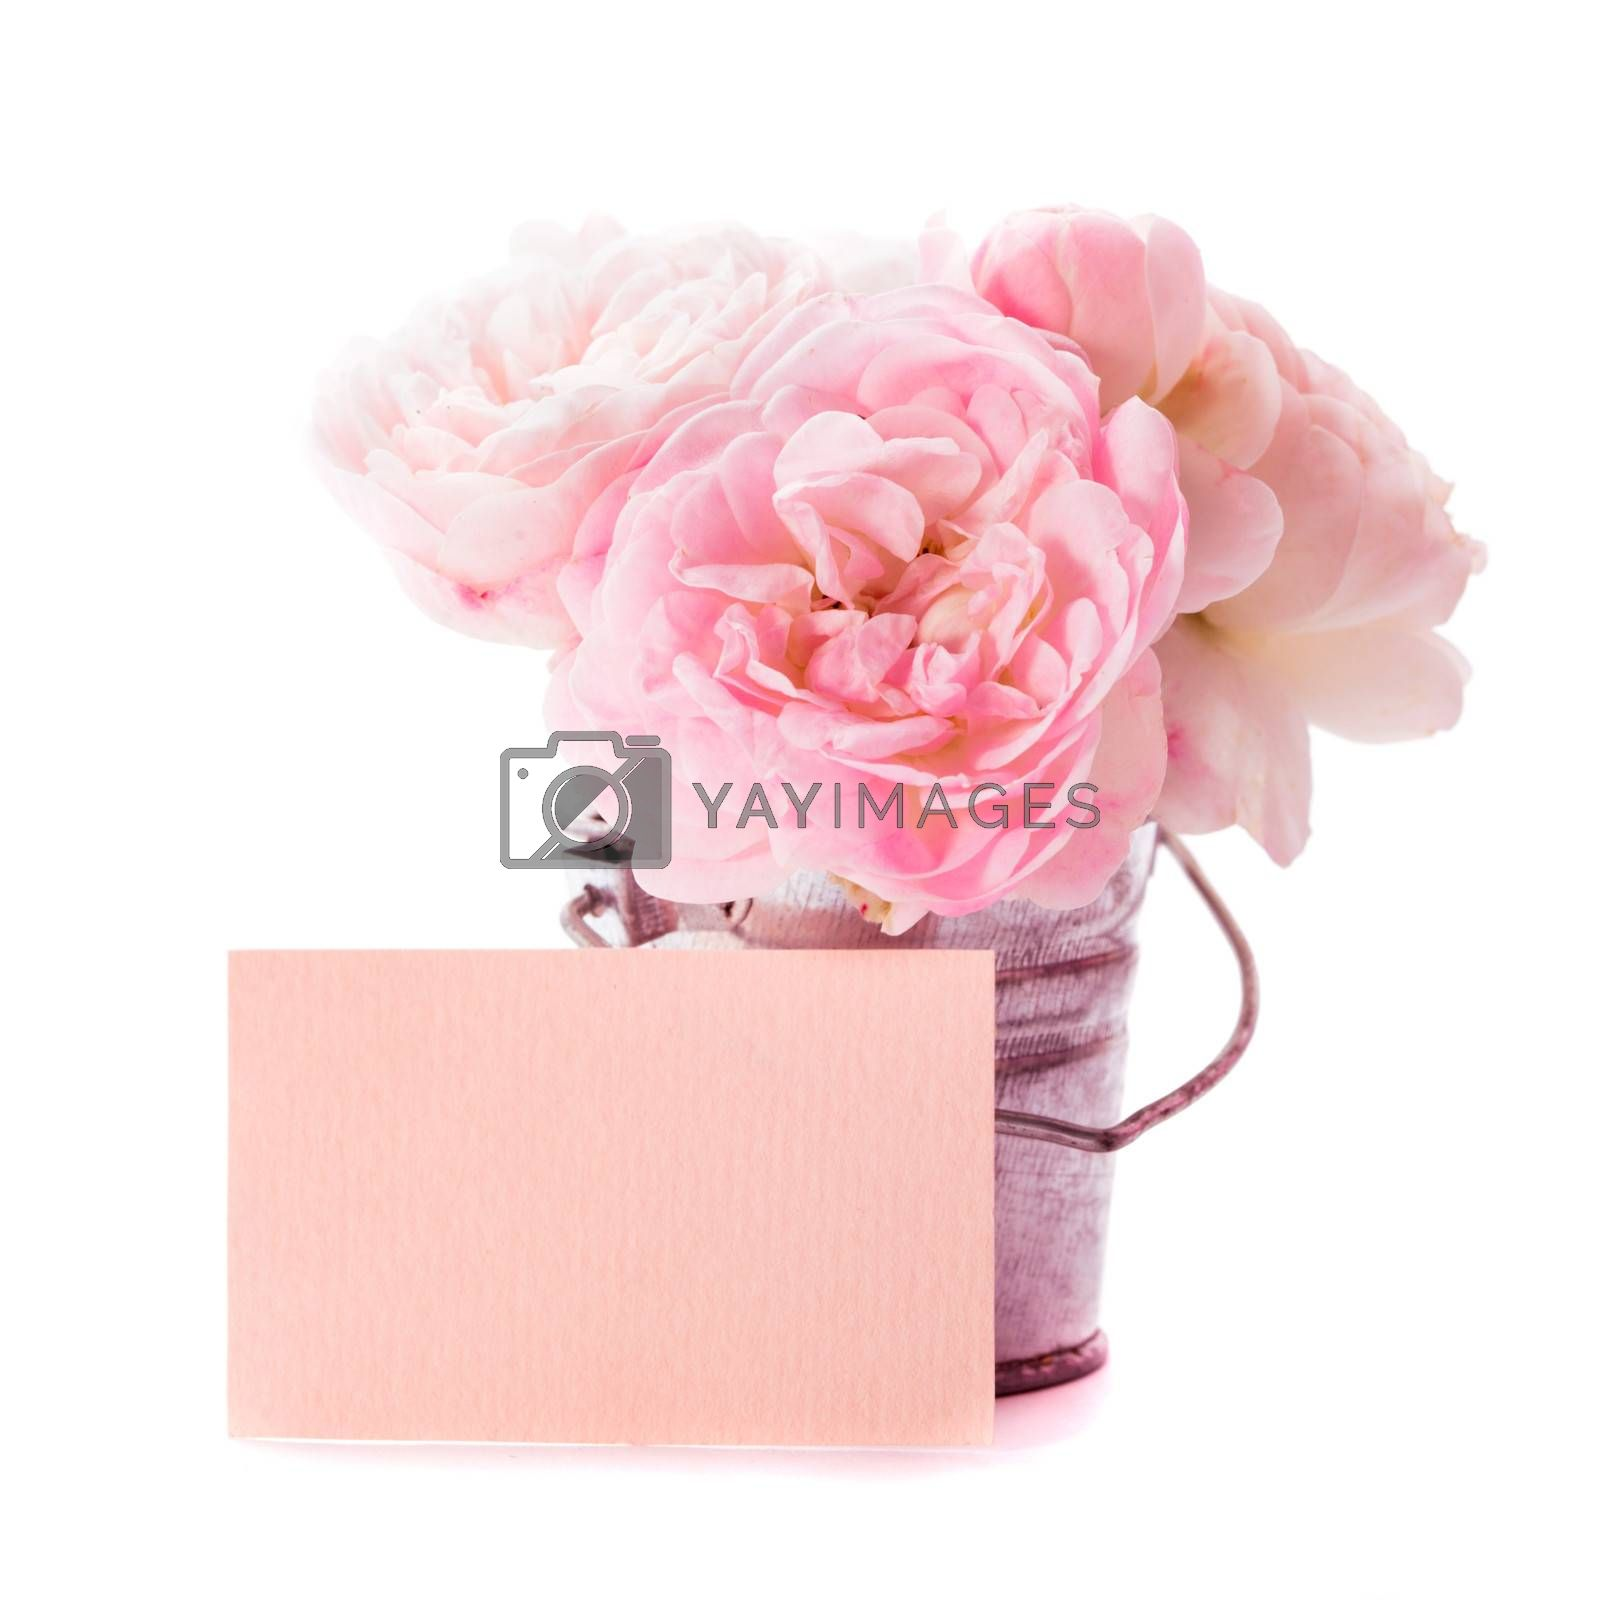 Cute greetings: pink roses bunch in little bucket and card, on white